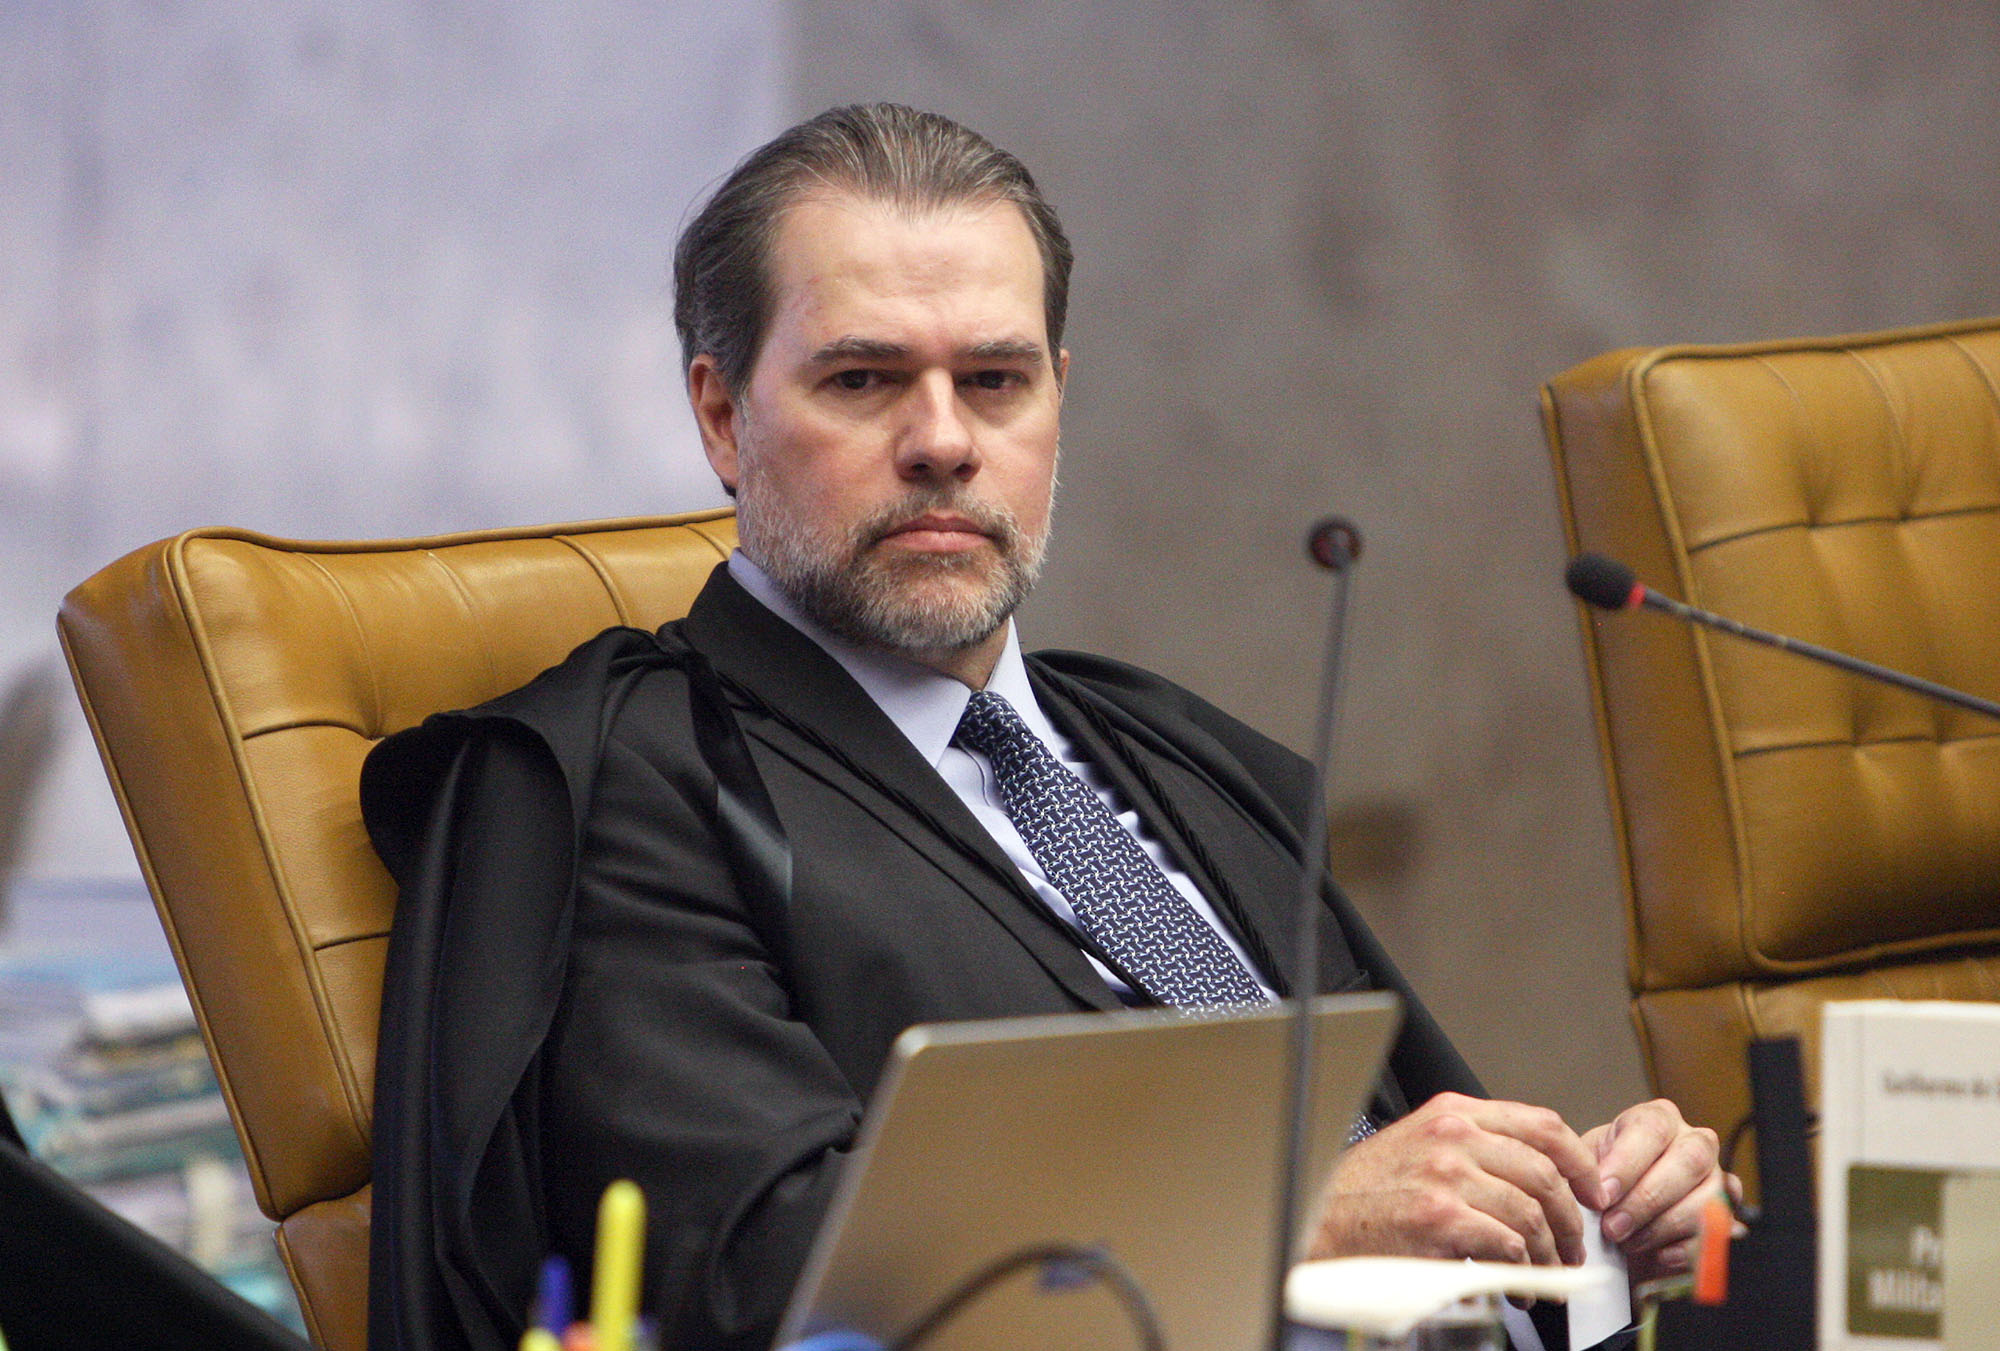 Meet Brazil's new Supreme Court Chief Justice